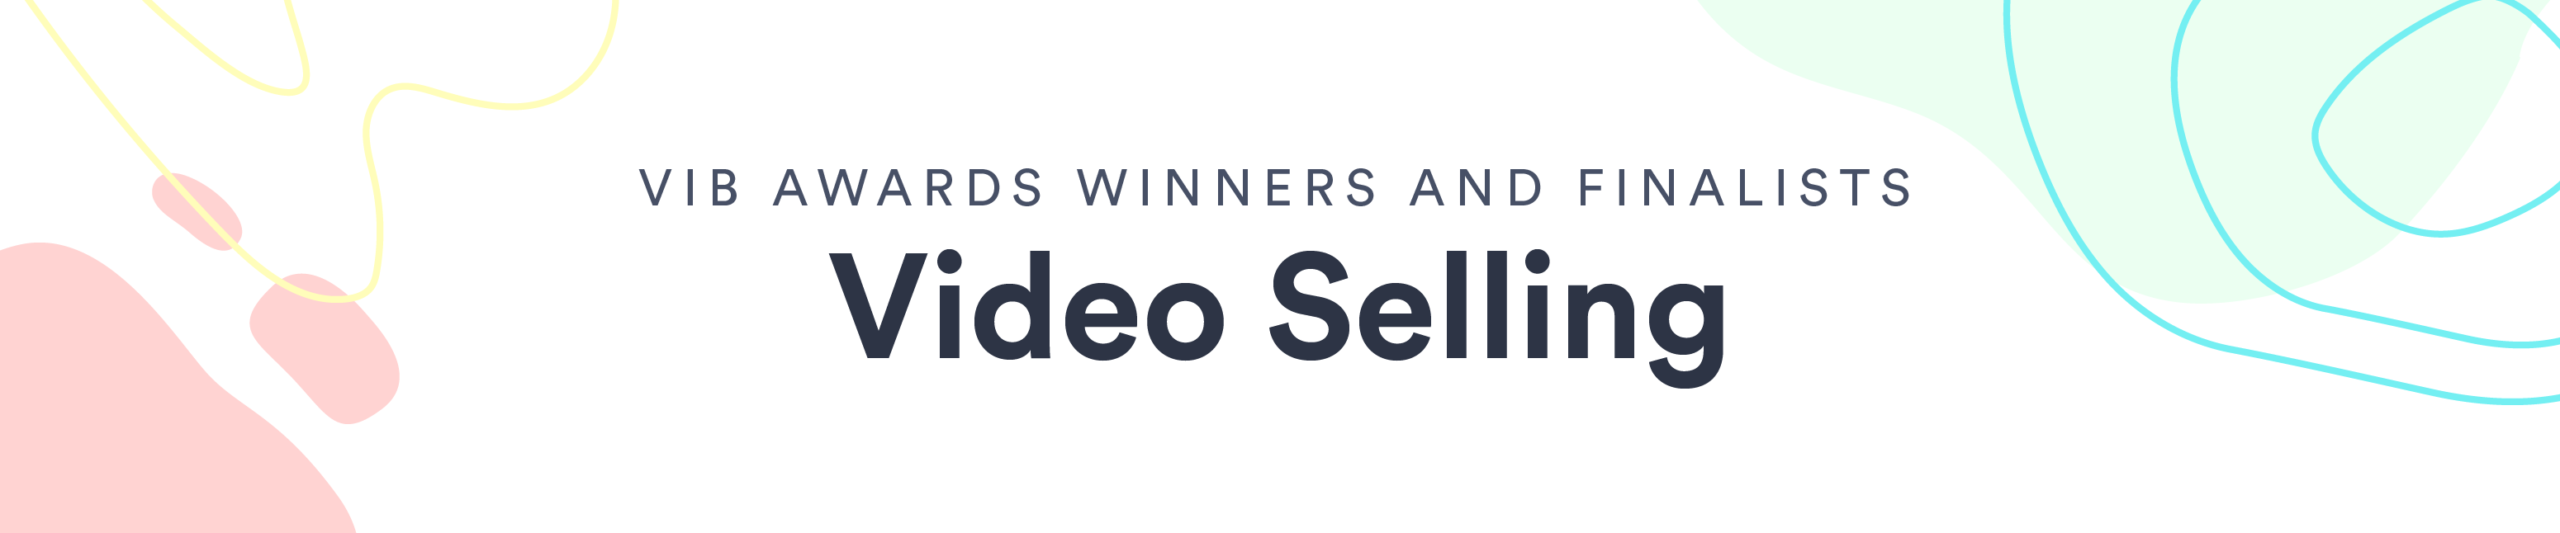 Video in Business Awards: Video in Sales Winners and Finalists